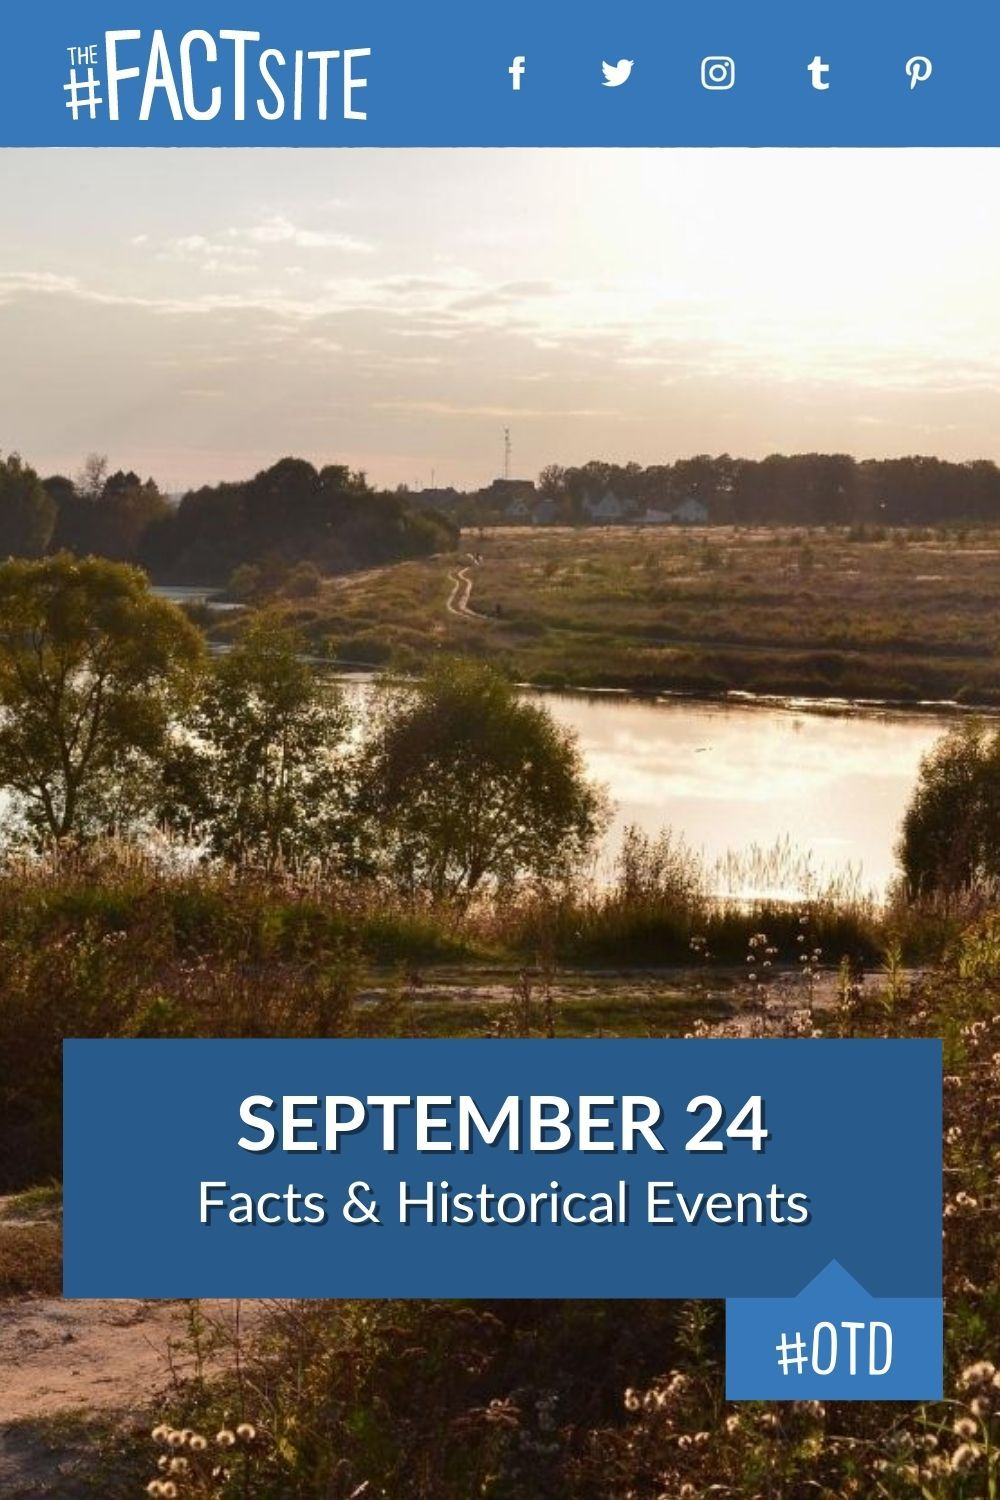 Facts & Historic Events That Happened on September 24